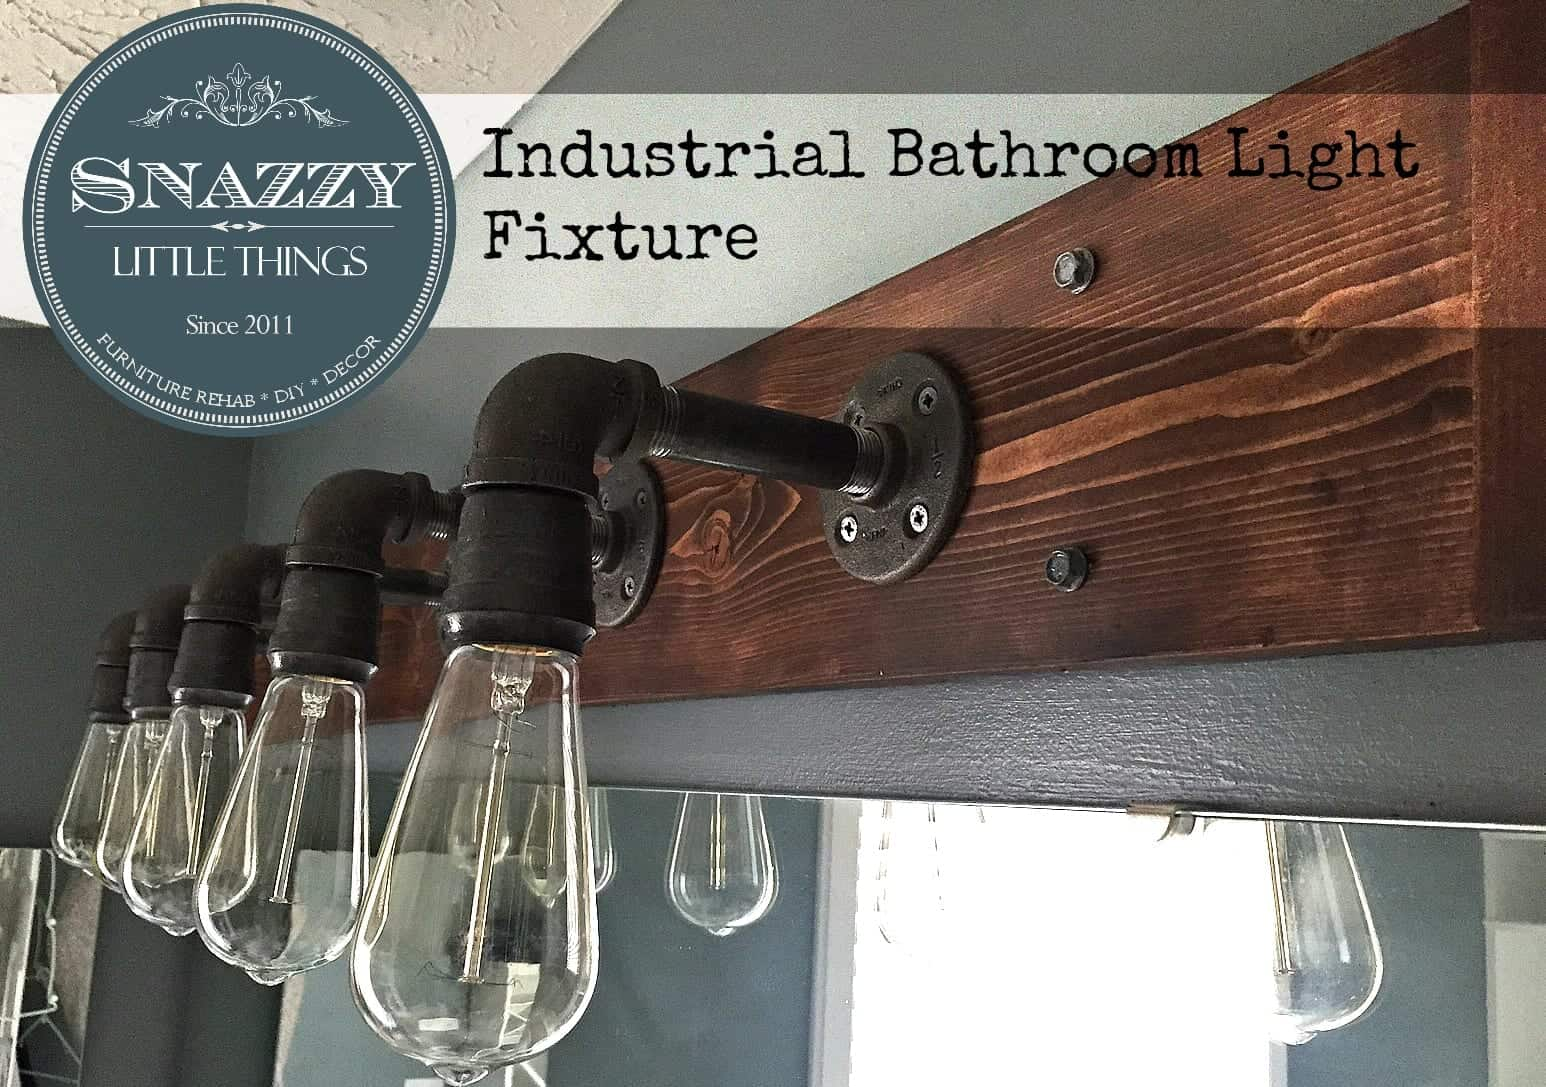 Bathroom Vanity Lighting Guide rustic bathroom light fixtures. rustic bathroom light fixtures